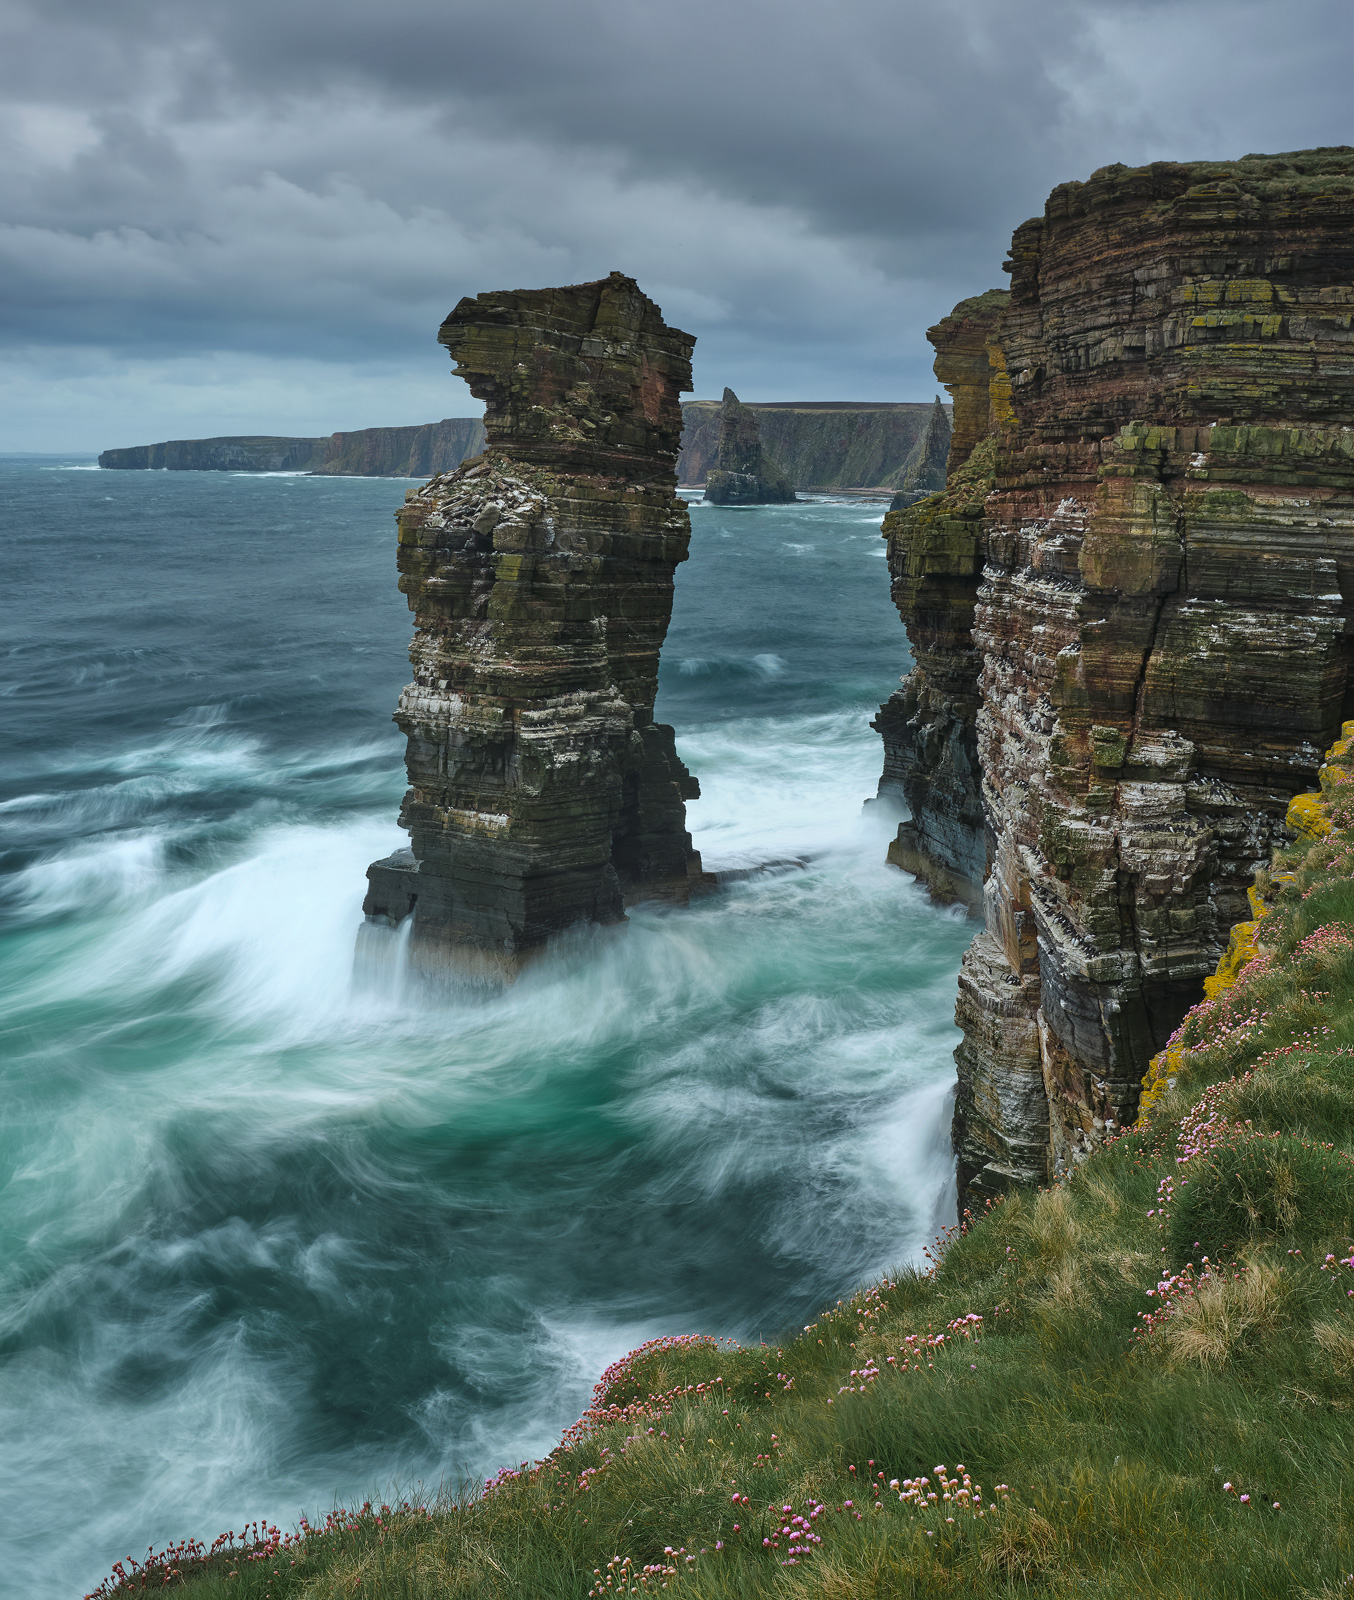 Turquoise waves pound the sea stacks and cliffs around Duncansby on the Caithness coast.